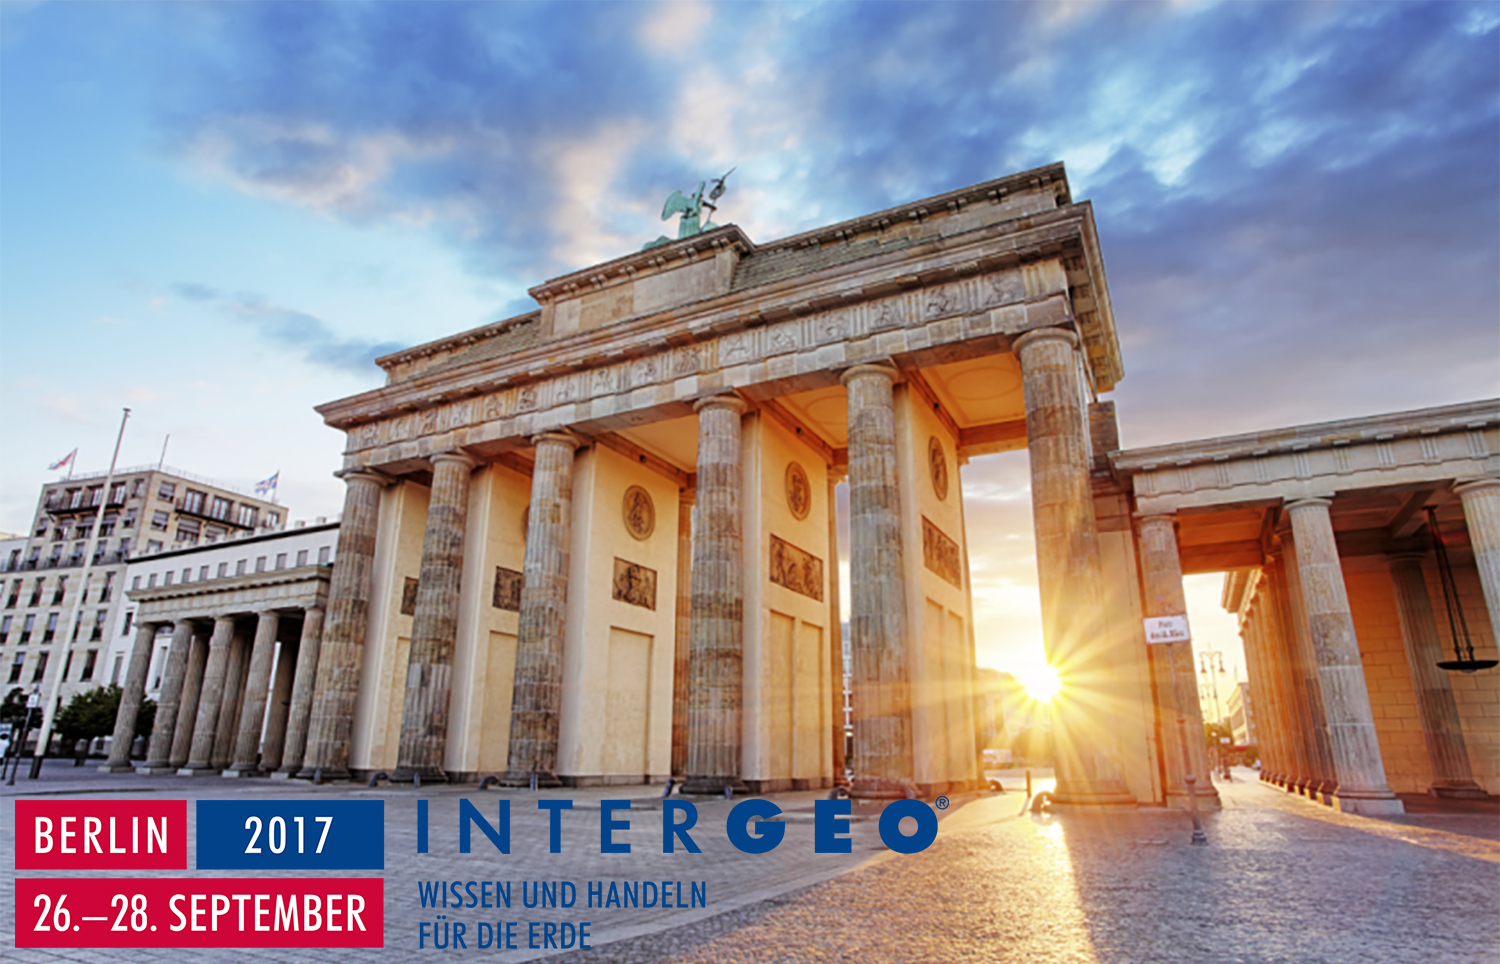 New Products Announced at Intergeo 2017